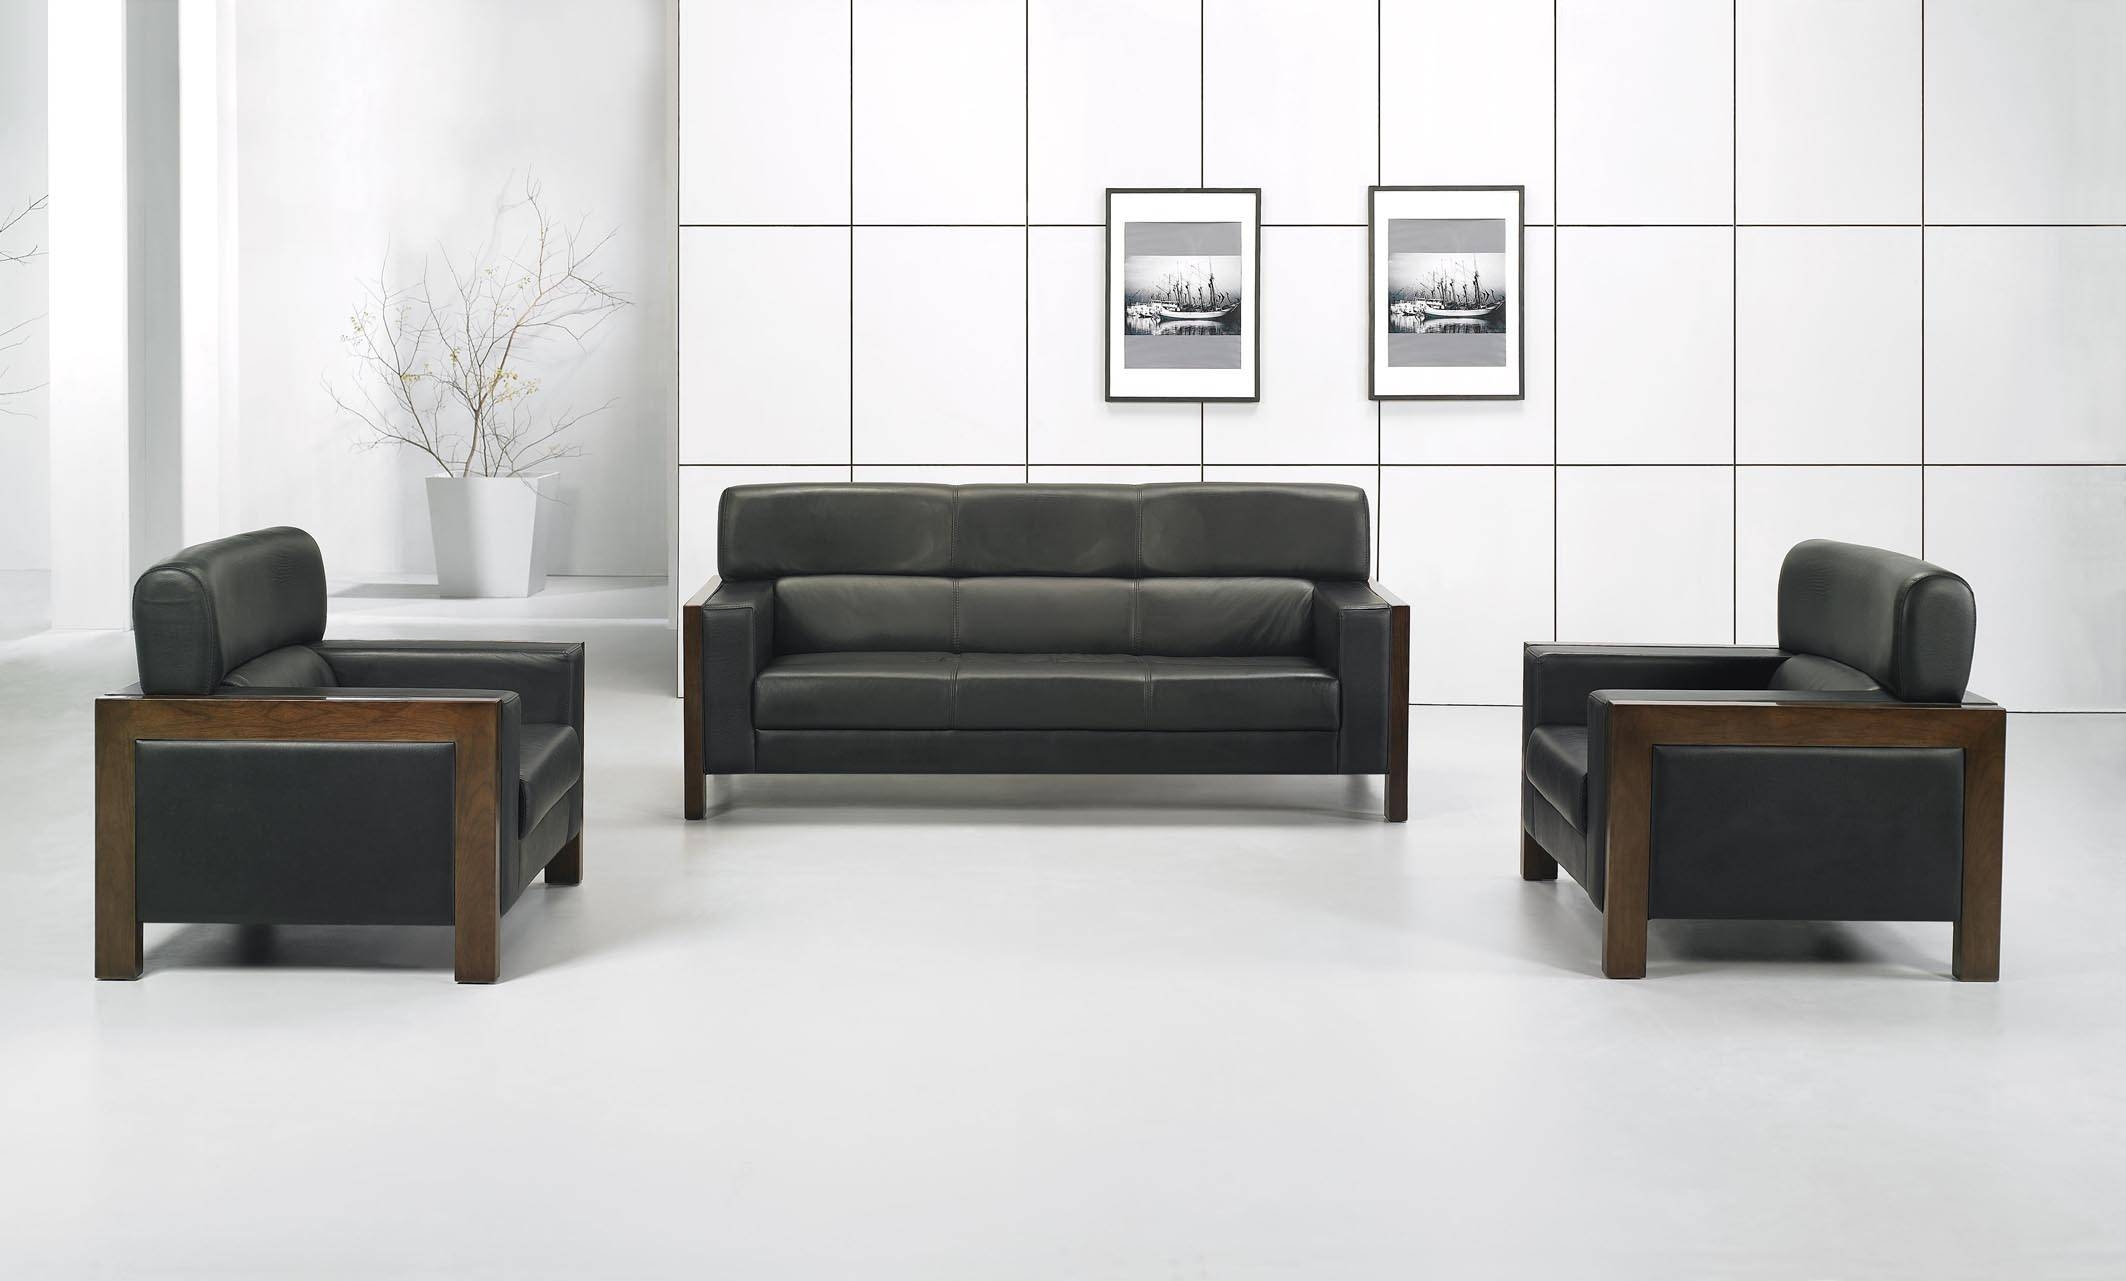 Office Sofa For Comfortable Office | Office Architect intended for Office Sofas And Chairs (Image 11 of 15)